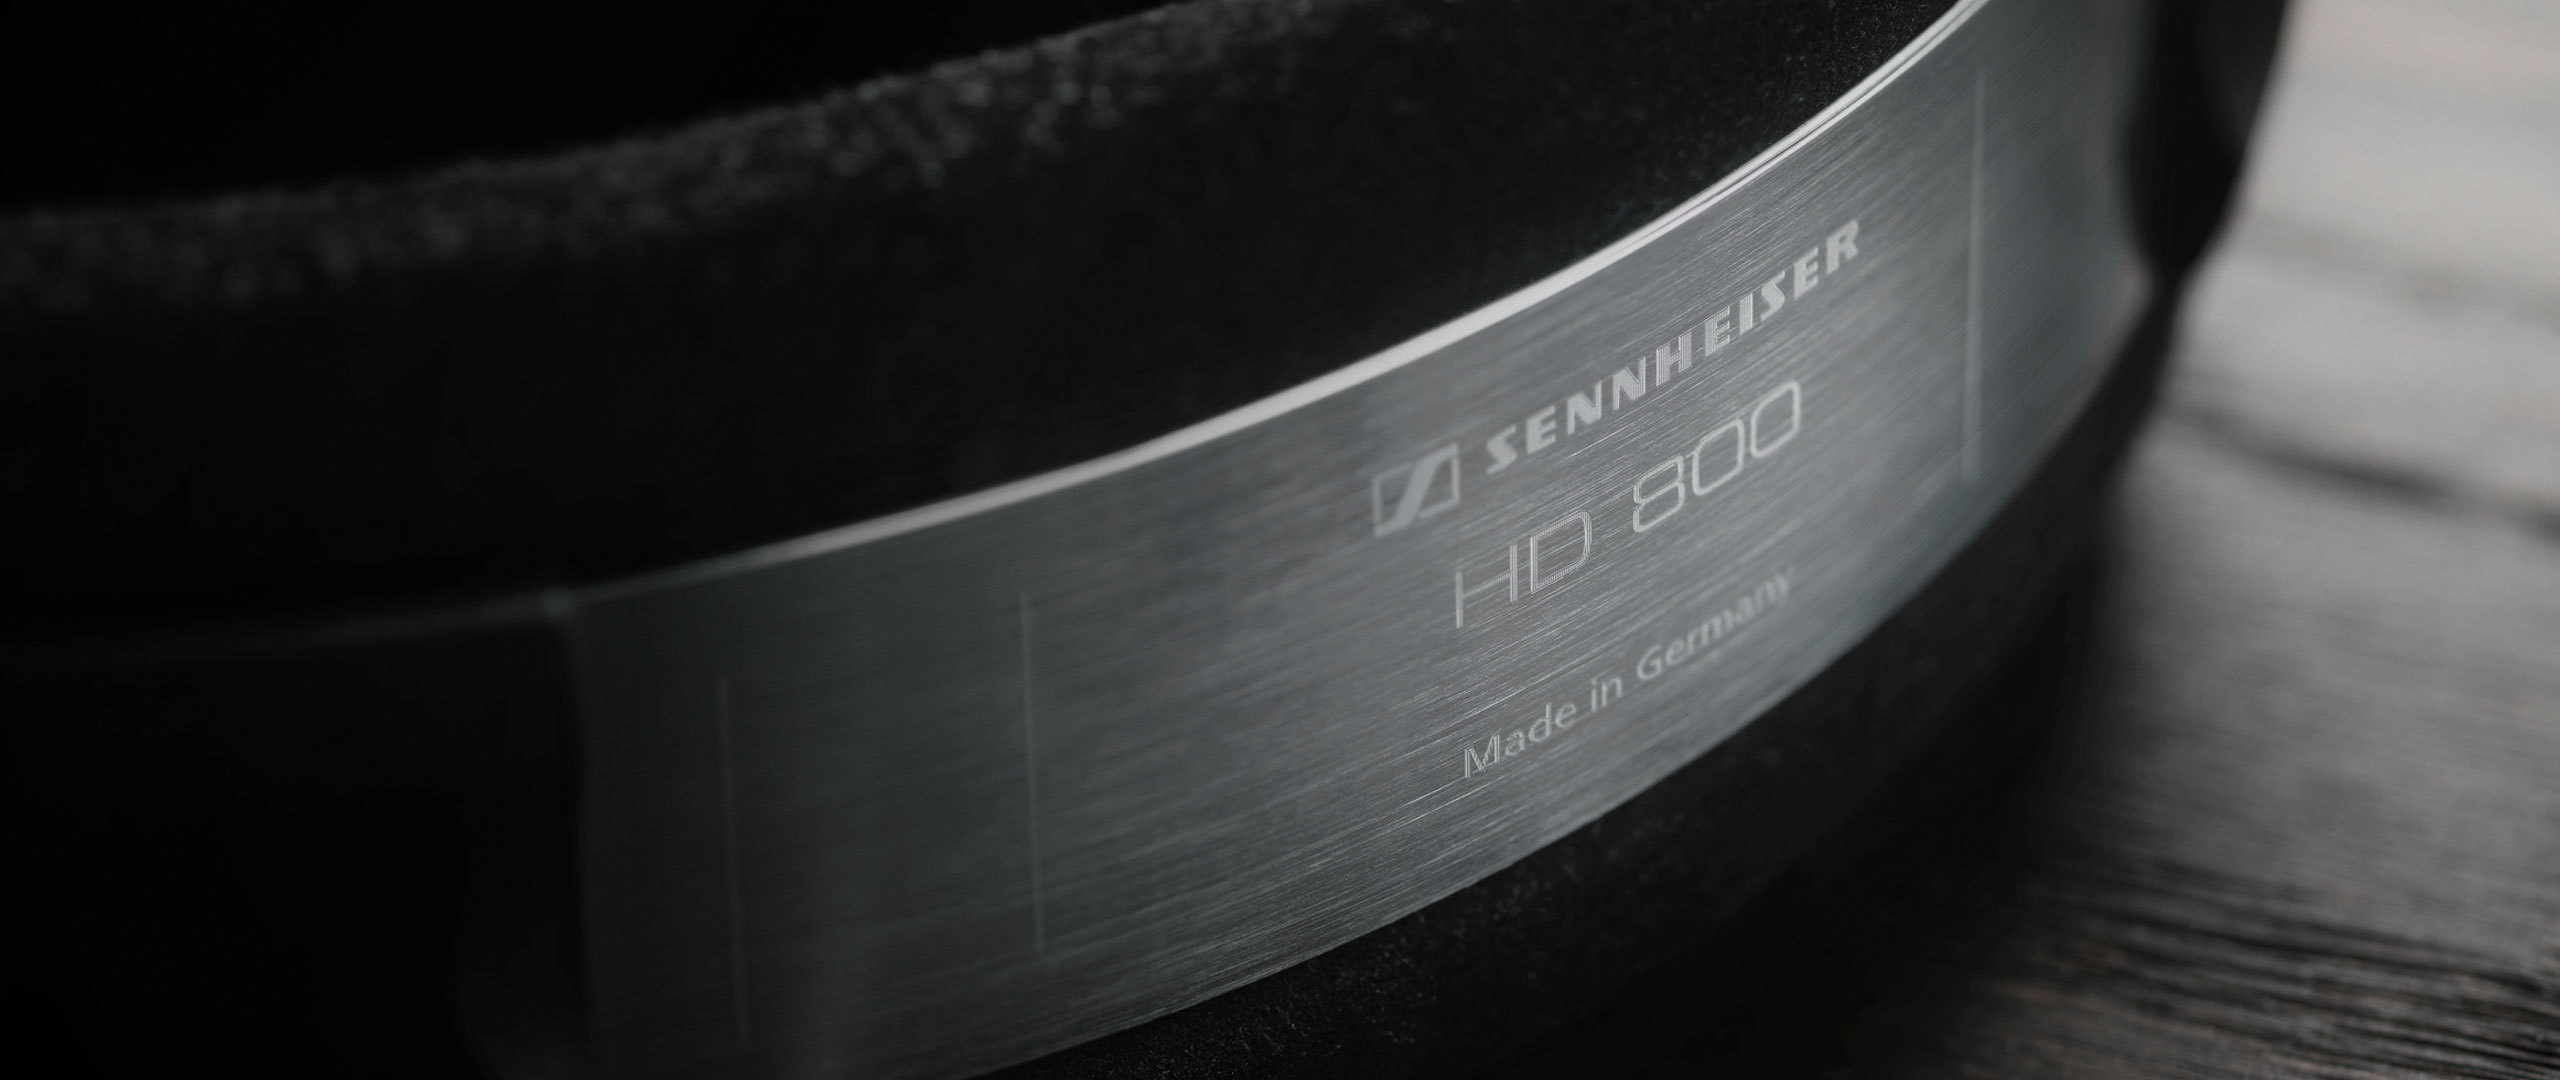 Sennheiser Service Support Wiring Diagram Newsletter